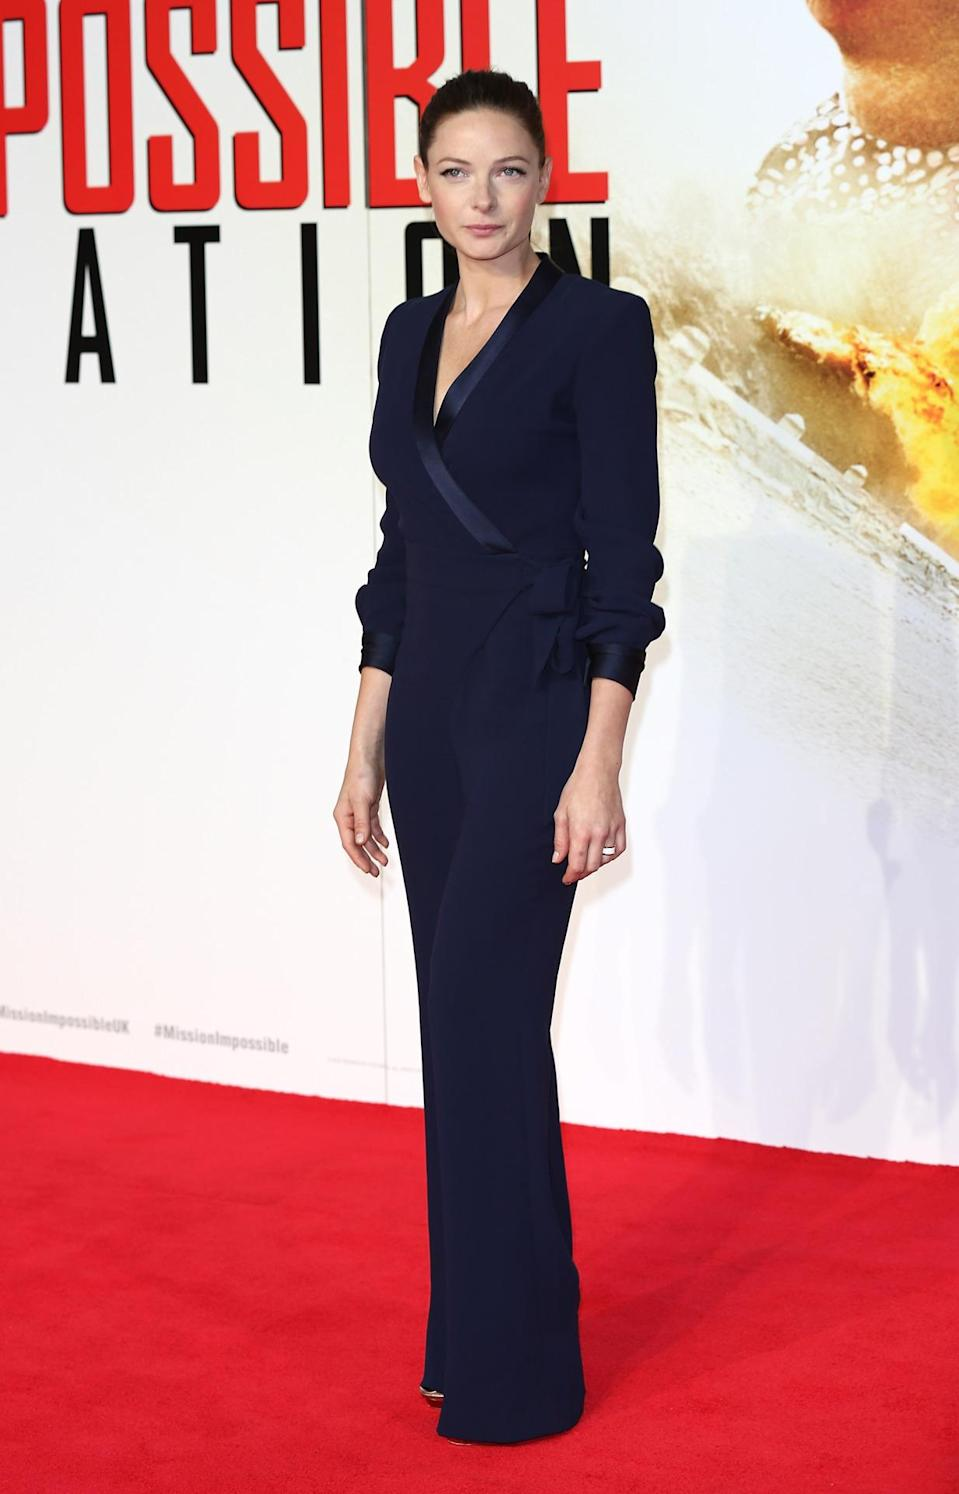 <p>Rebecca Ferguson wears a plunging navy jumpsuit by Diane von Furstenberg.</p><p>Rebecca Ferguson attended the London premiere of her new film, <i>Mission Impossible: Rogue Nation</i>, in a menswear-inspired jumpsuit by Diane von Furstenberg.<br><br></p>